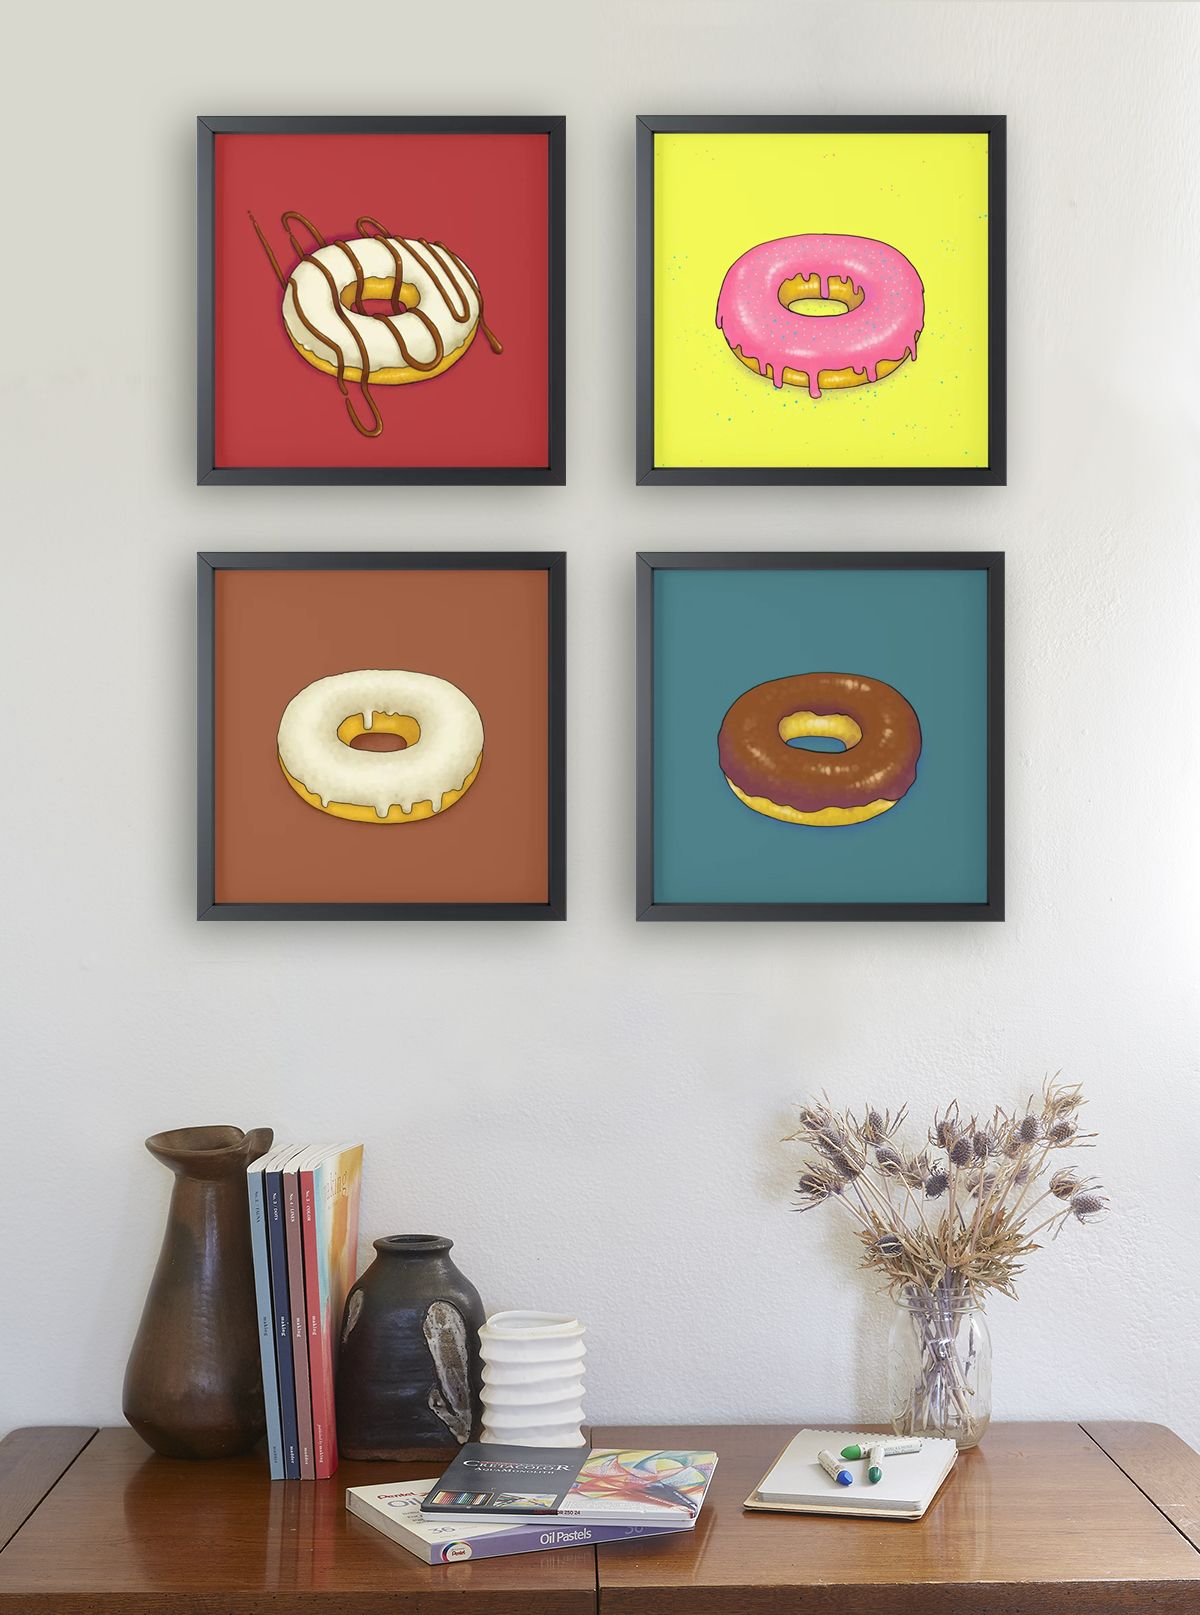 #interior #interiordesign #design #homedecor #home #architecture #decor #furniture #art #homedesign #interiors #decoration #inspiration #luxury #livingroom #interi #homesweethome #designer #interiorstyling #style #modern #interieur #interiordecor #interiordesigner #print #wallprint #canvasprint #home #homedecoration #donut #doughnut #pink #tasty #illustration #foodillustration #illustrasjon #matillustrasjon #mat #dessert #fastfood #junkfood #junkfoodillustration #comfortfood #cheatday #wallart